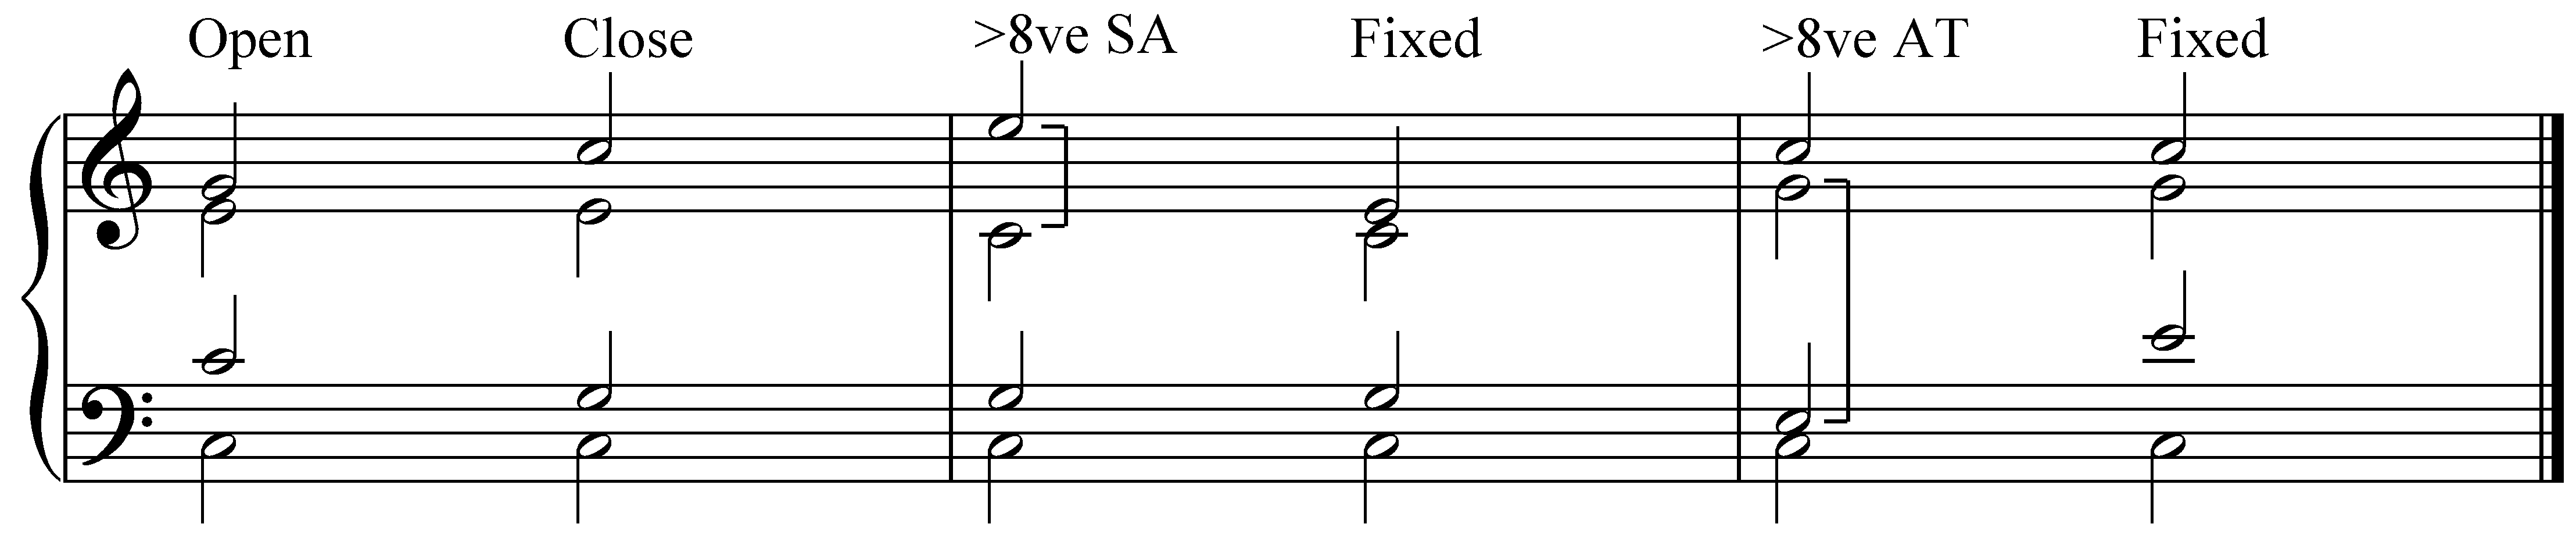 a2 note